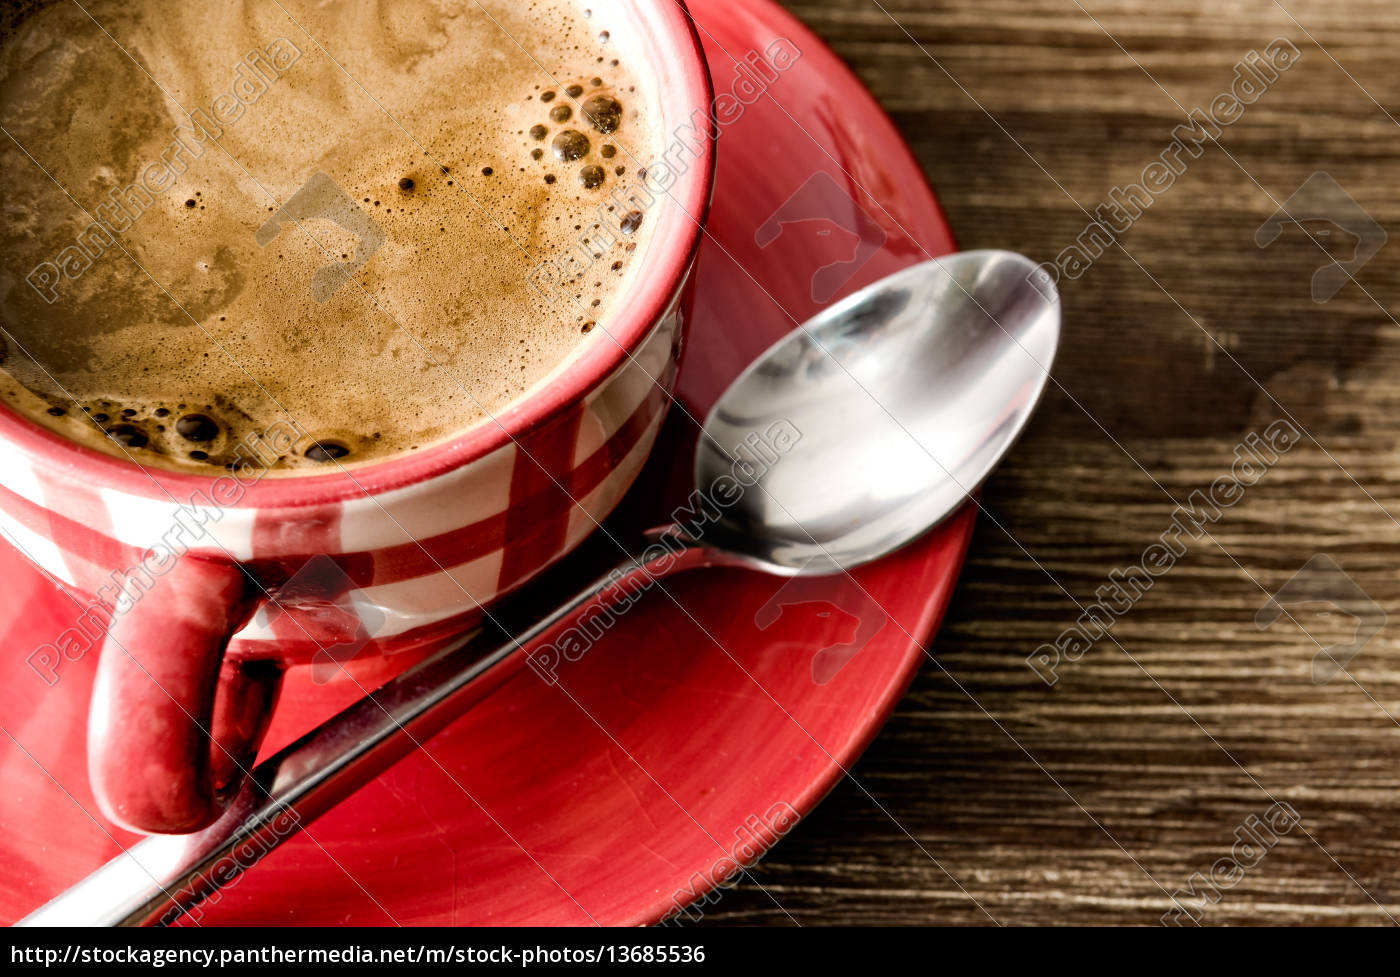 detail, of, coffee, in, red, cup - 13685536